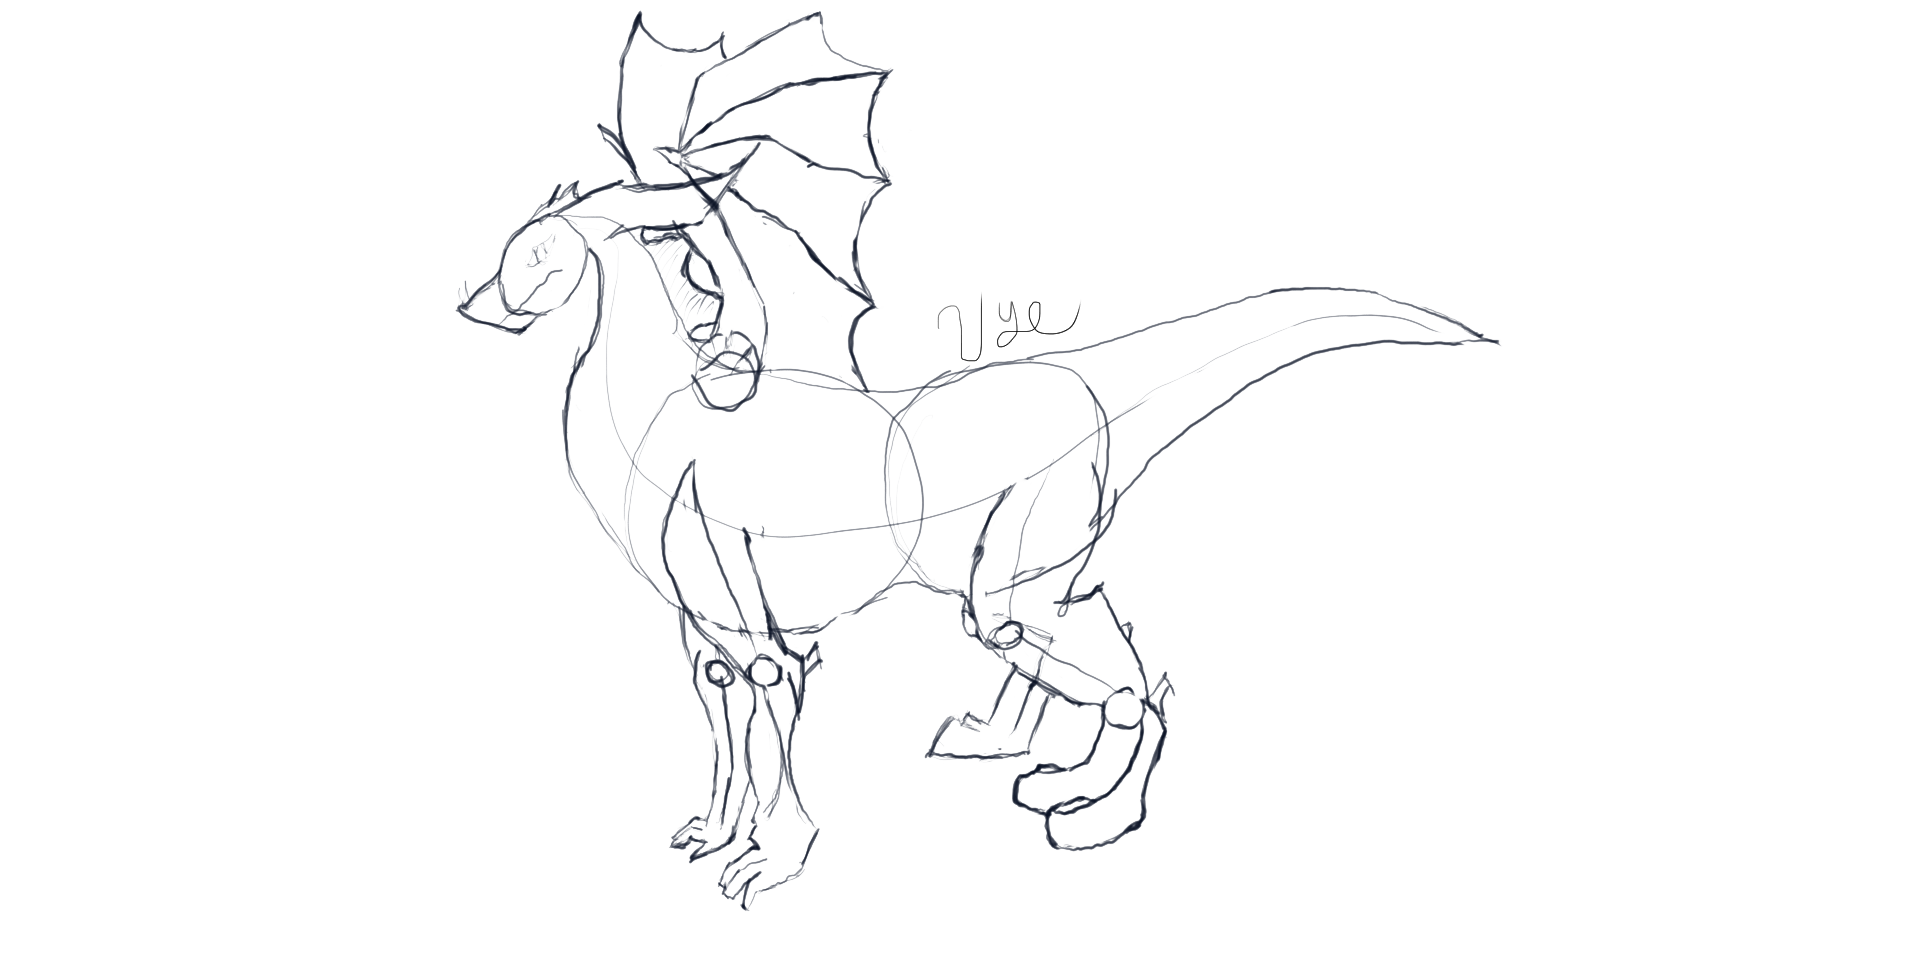 1920x972 Dragon How To Draw It In 6 Steps Using Simple Shapes